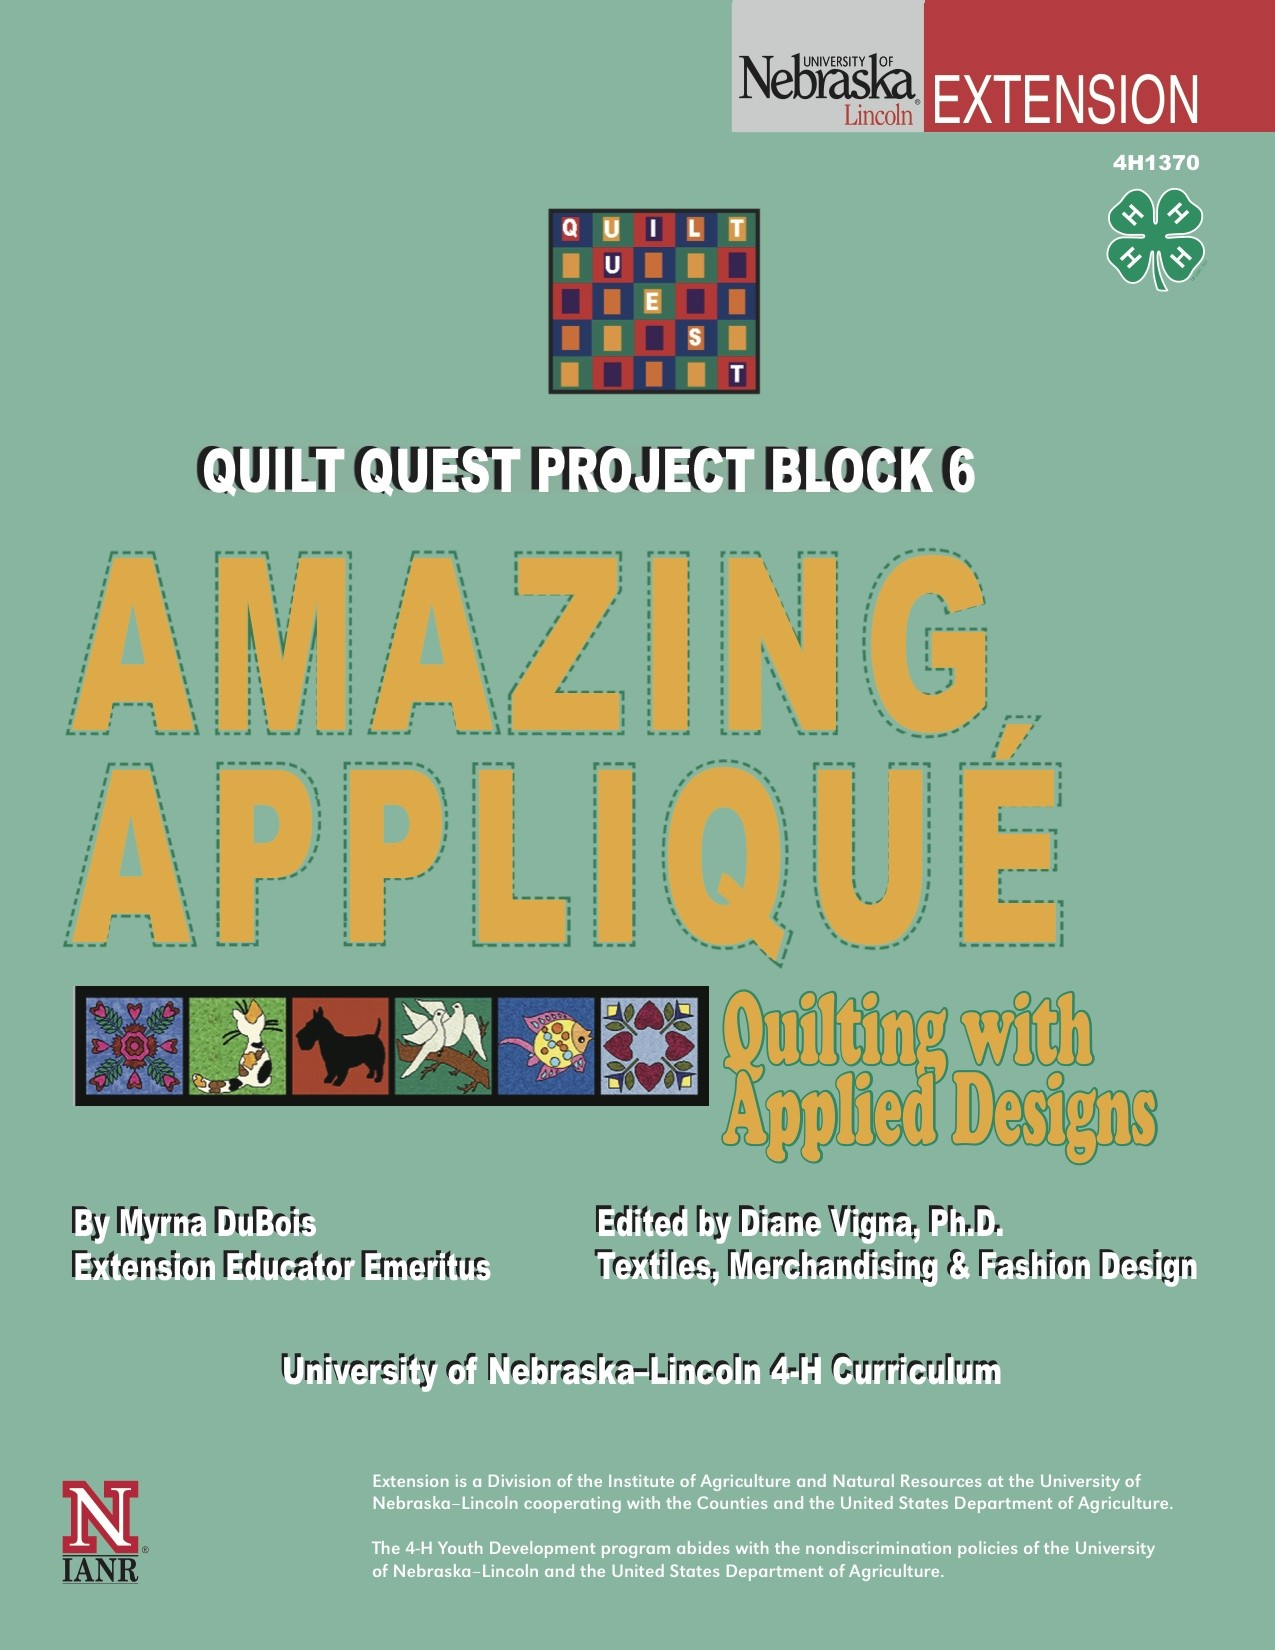 Quilt Quest Project Block 6: Amazing Appliqué